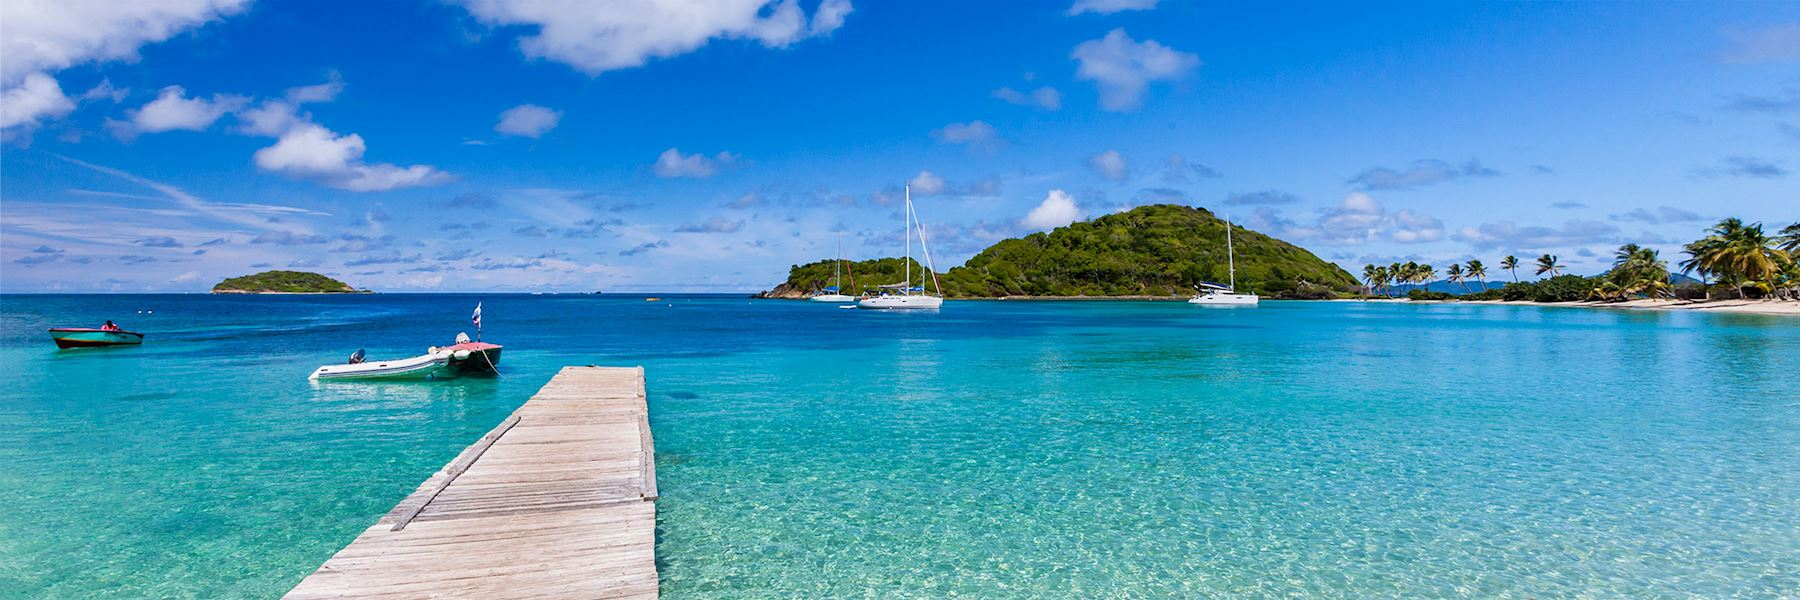 St Vincent and the Grenadines trip ideas